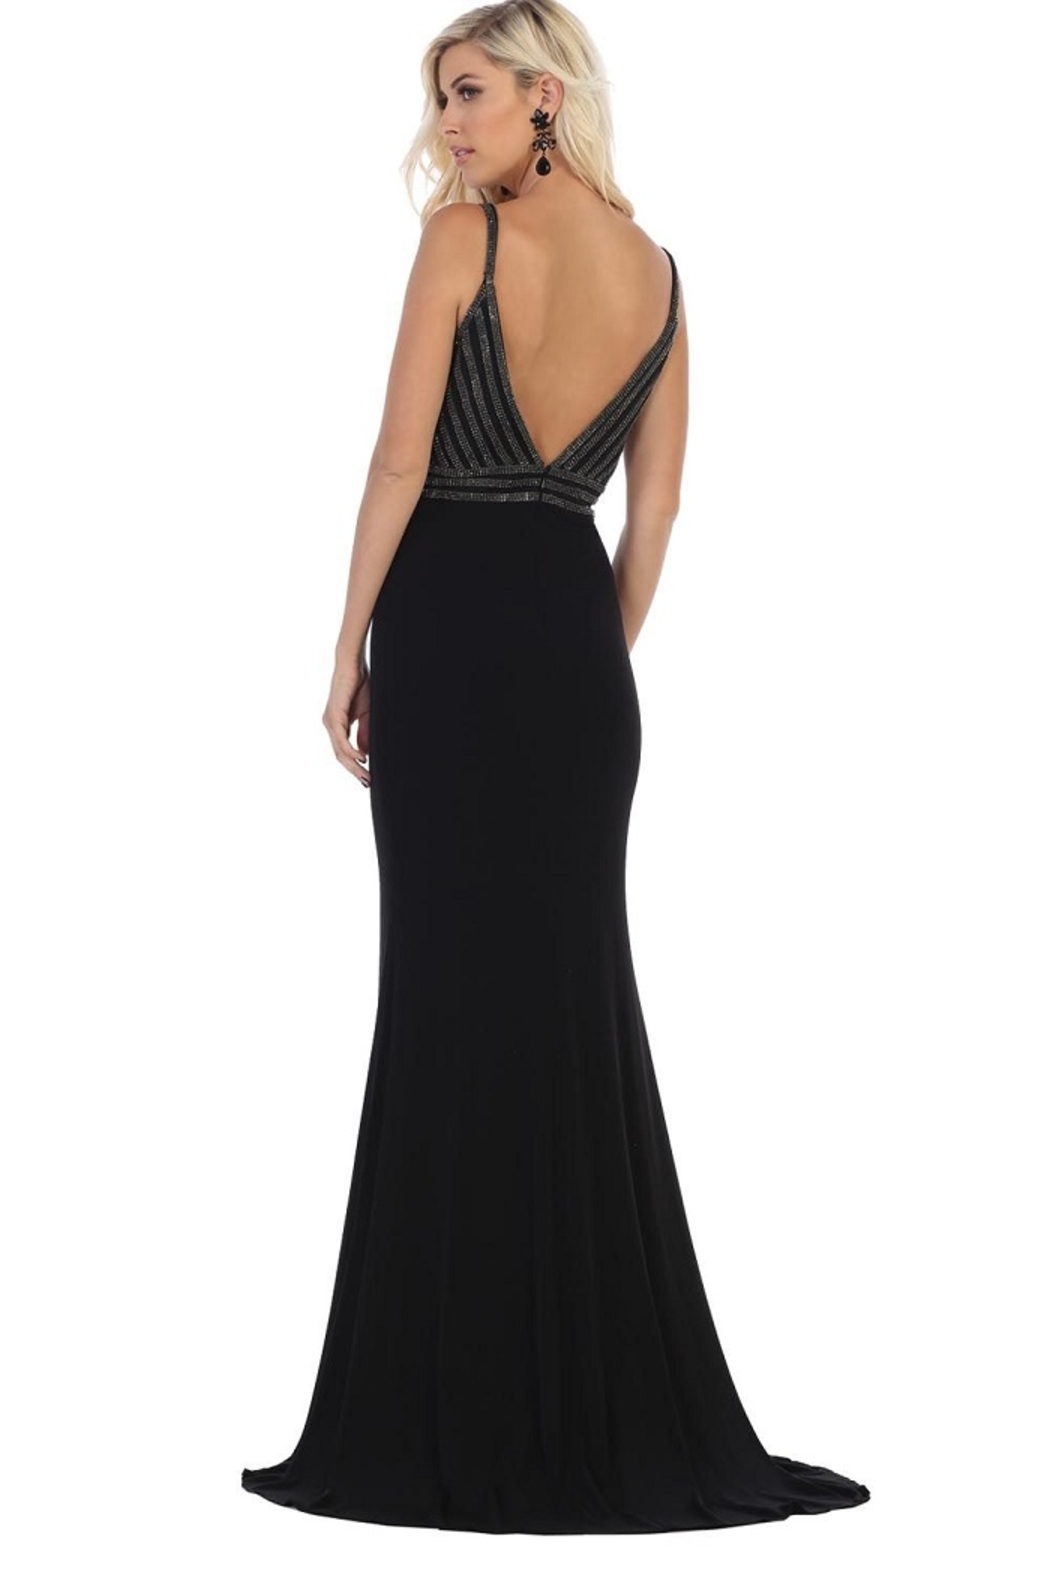 May Queen  Black Sweetheart Beaded Formal Long Dress - Front Full Image